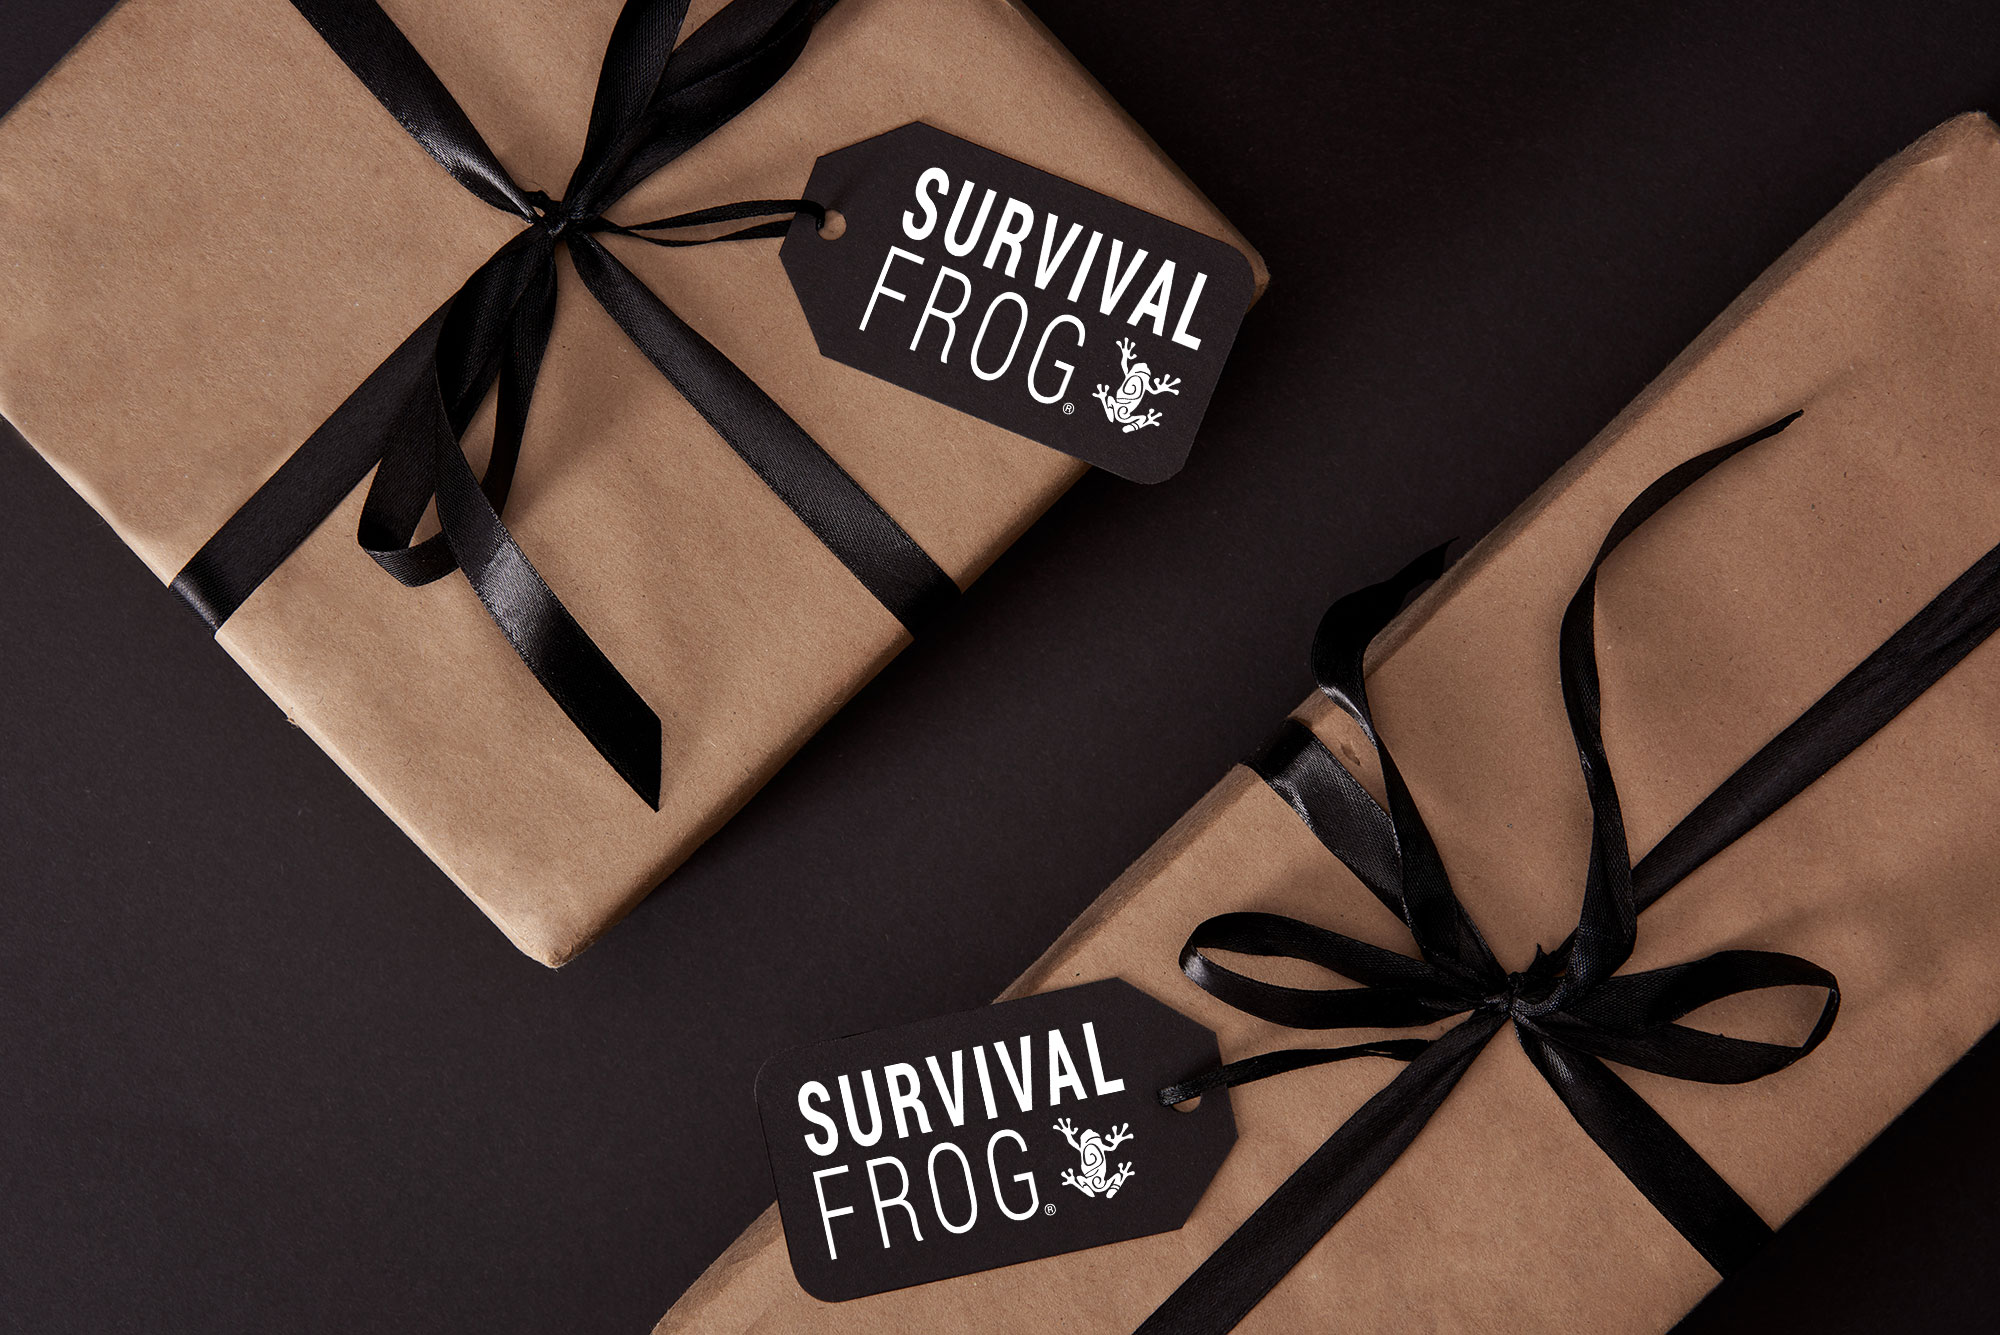 Survival Frog 2019 Gift Guide